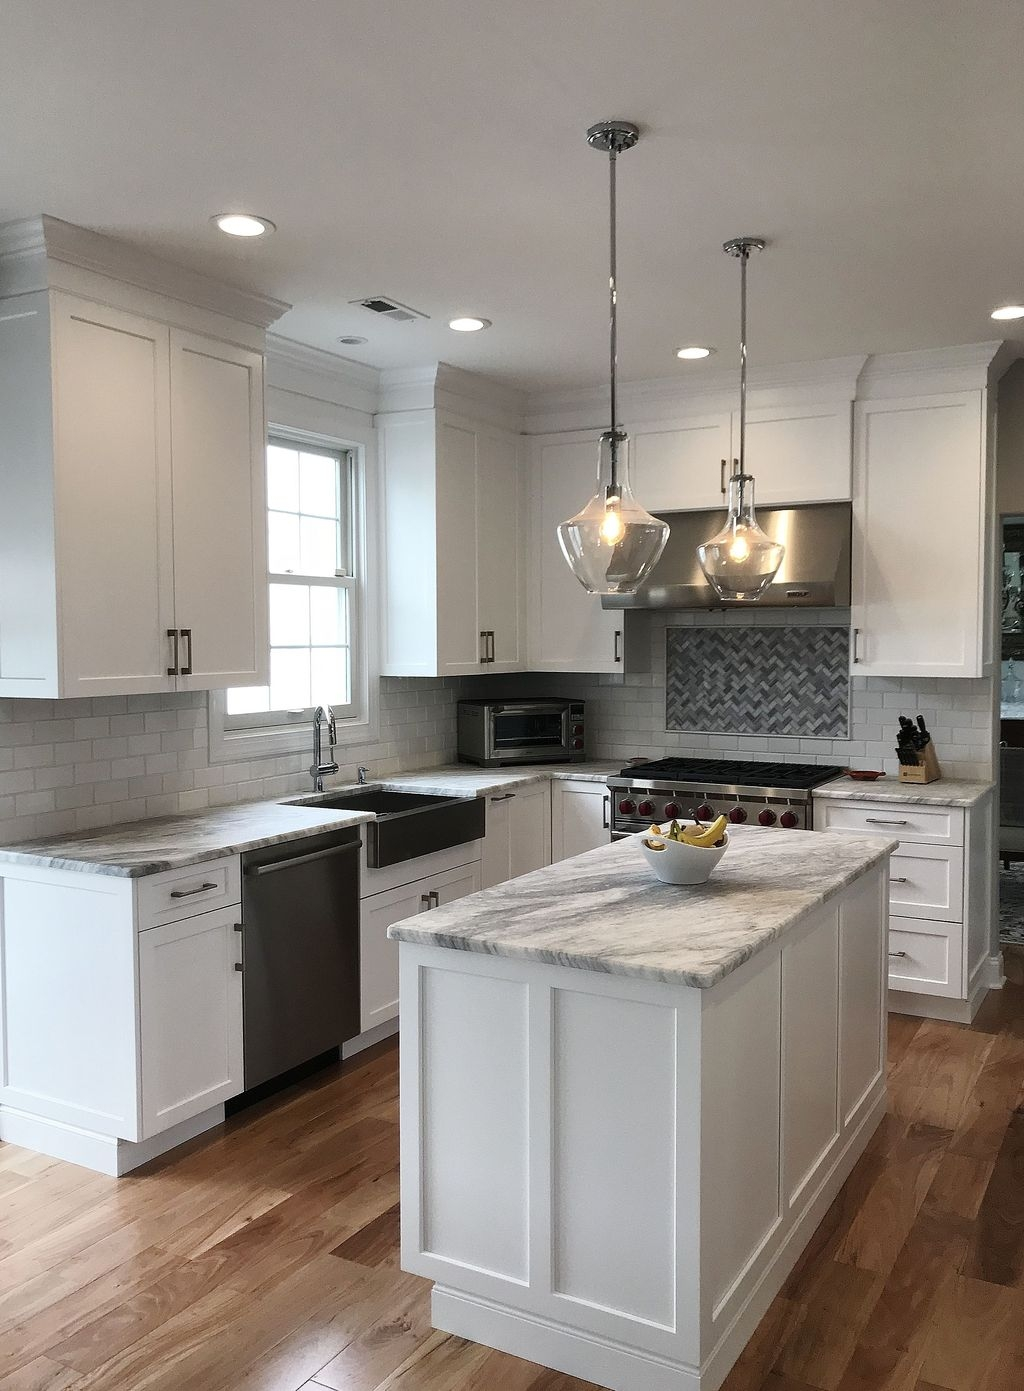 Awesome Small Kitchen Remodel Ideas02